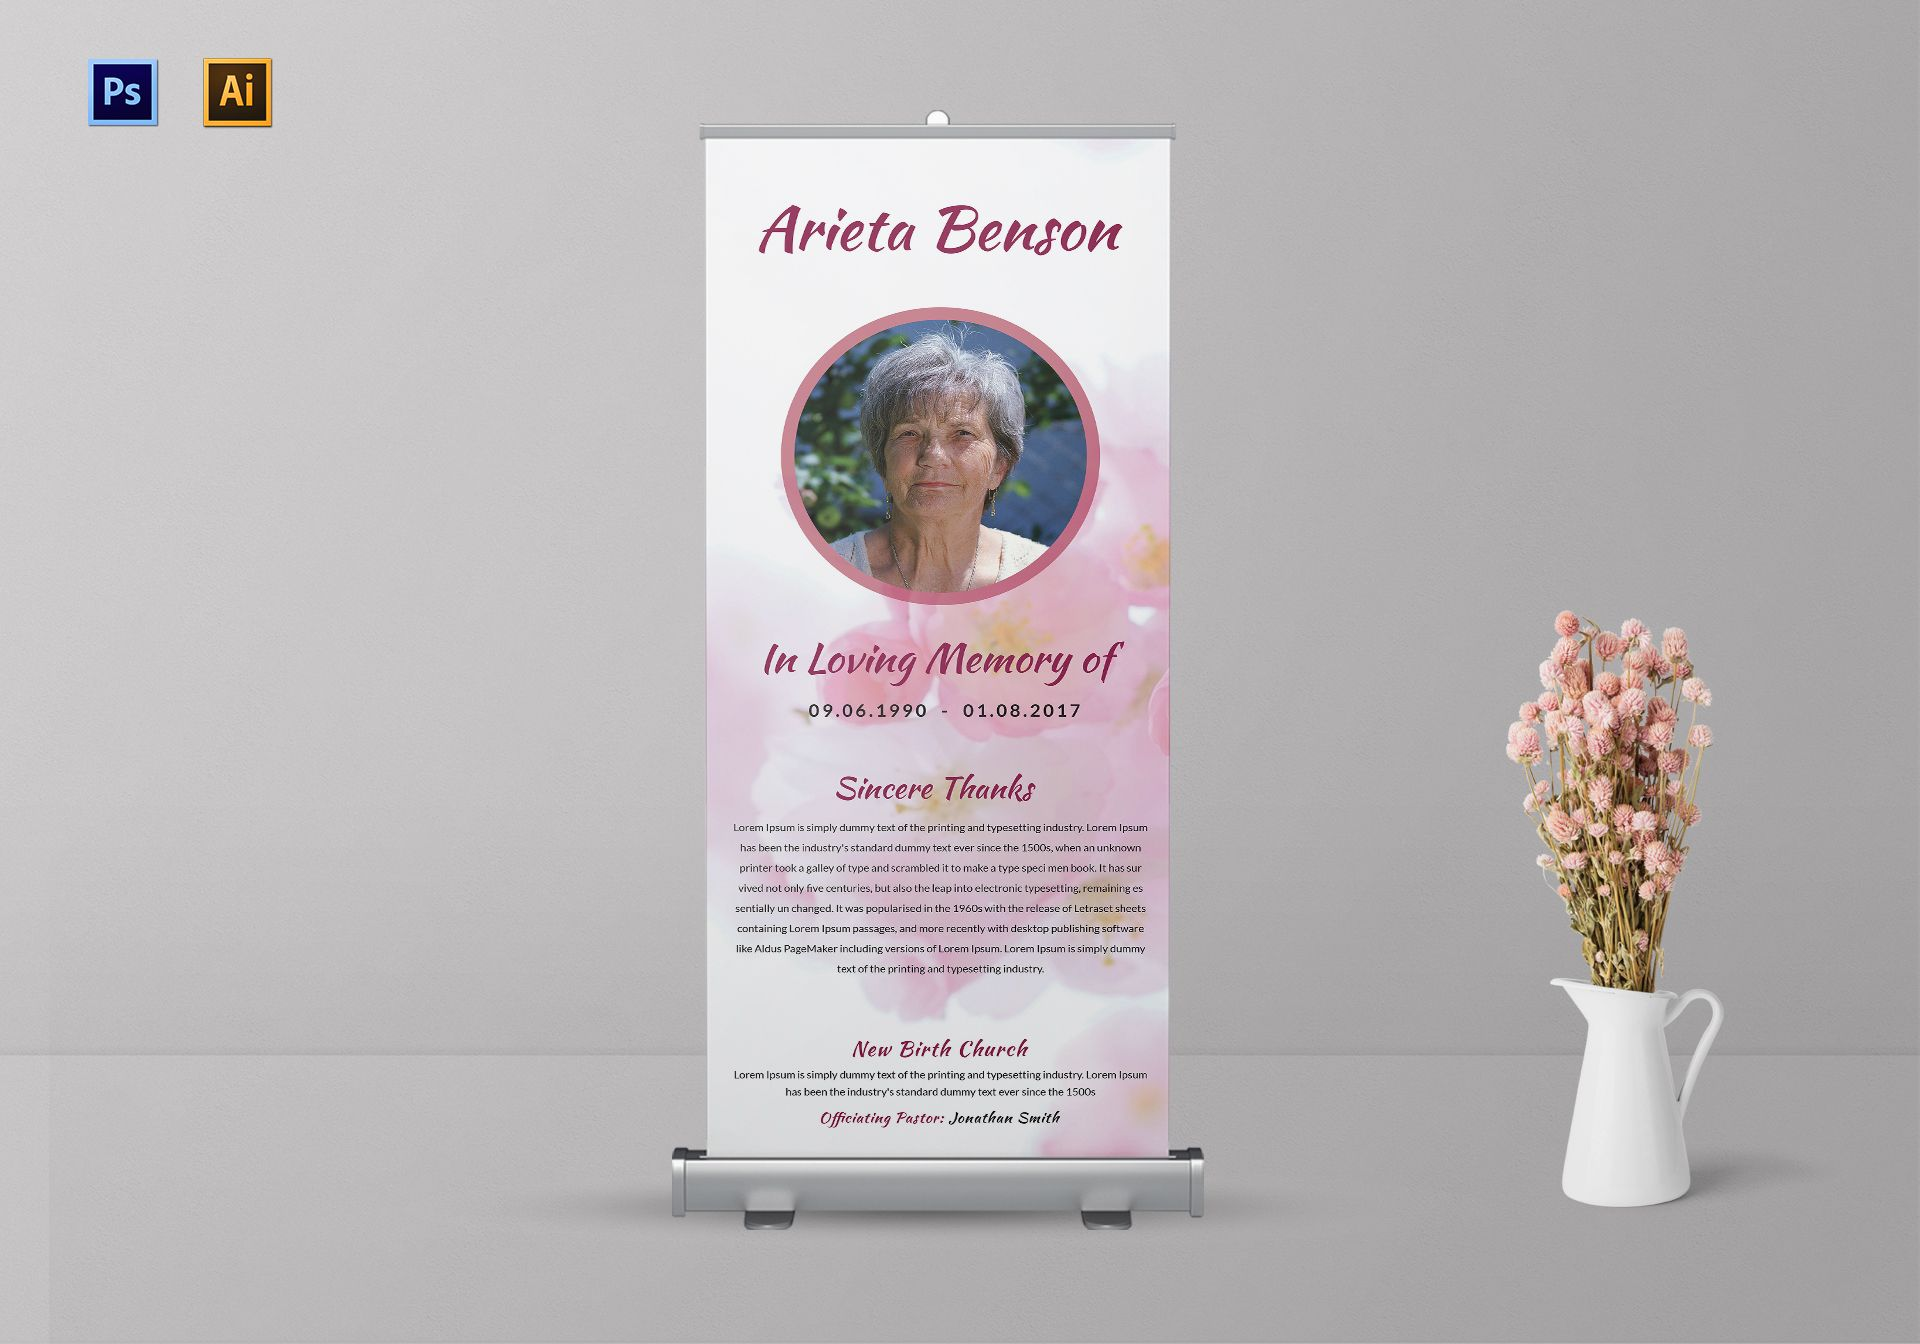 Loving Memory Funeral Roll-up Banner